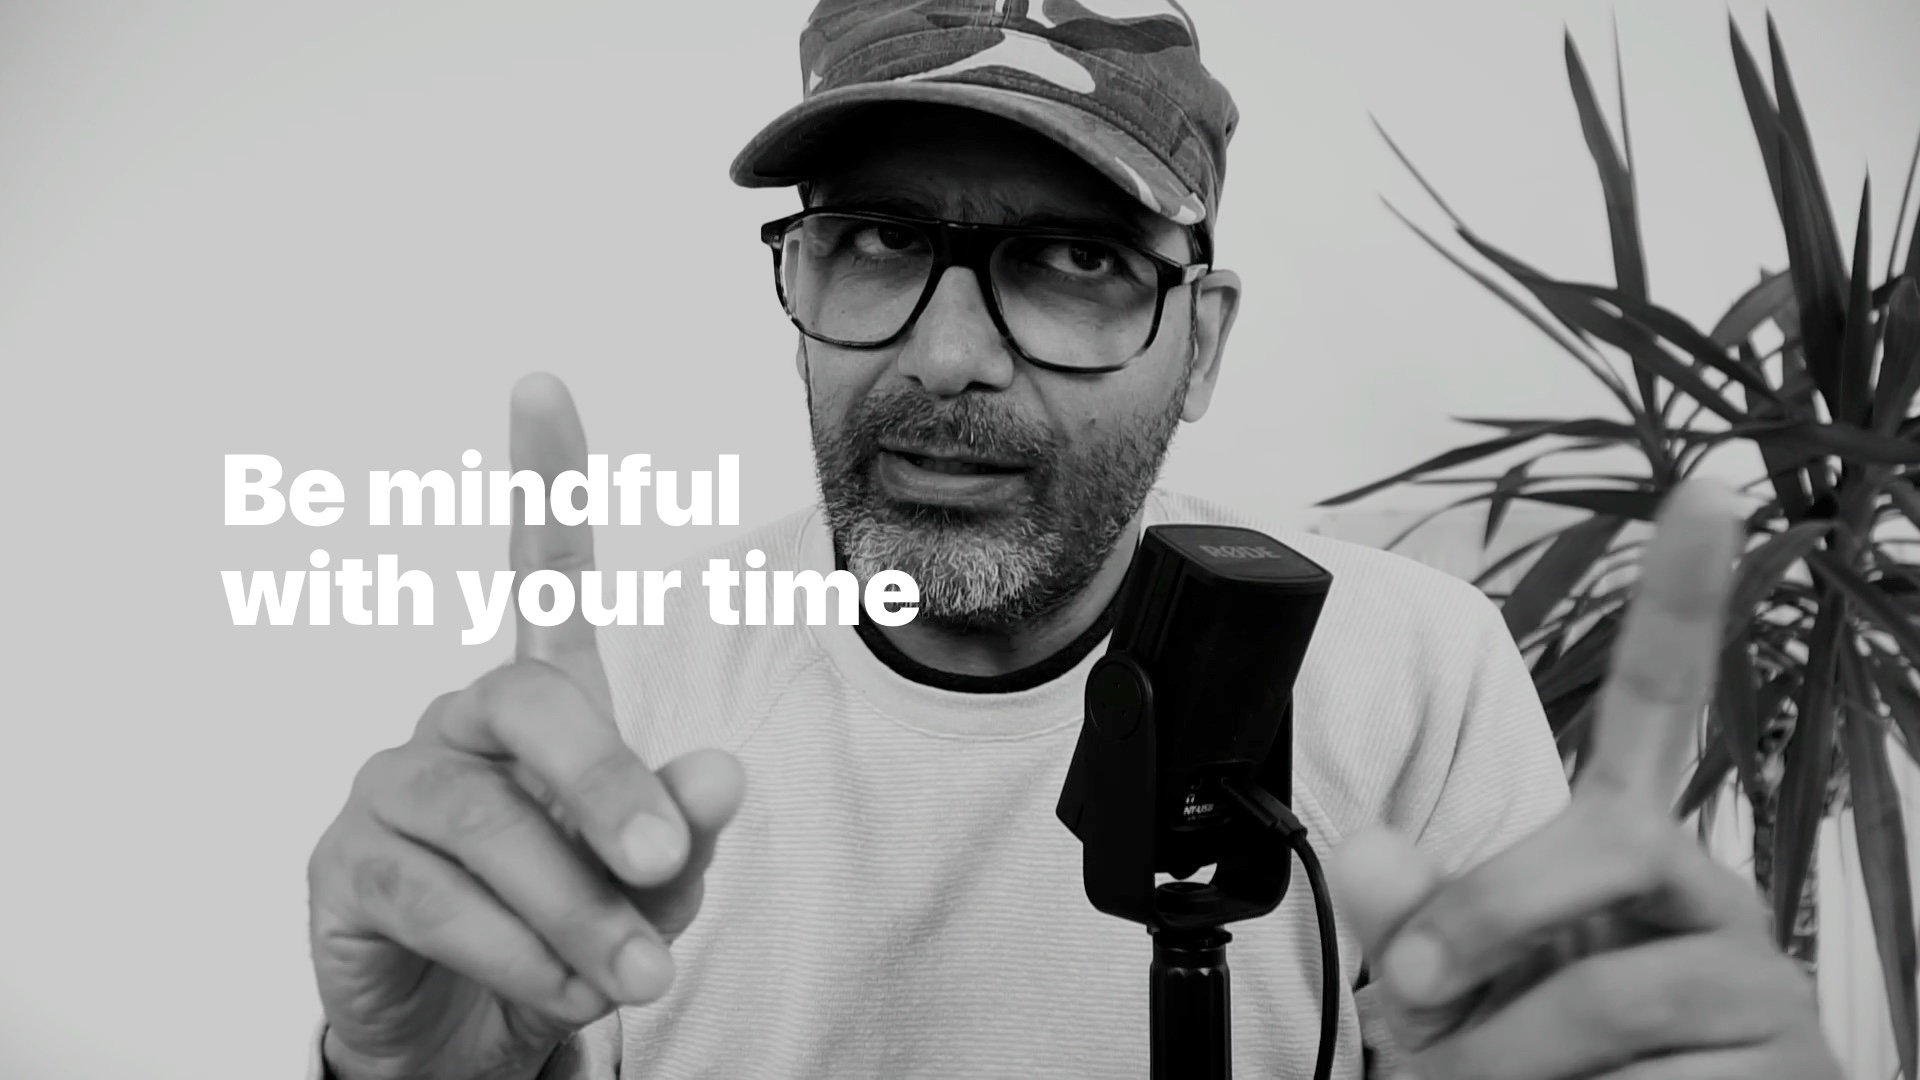 Be mindful with your time